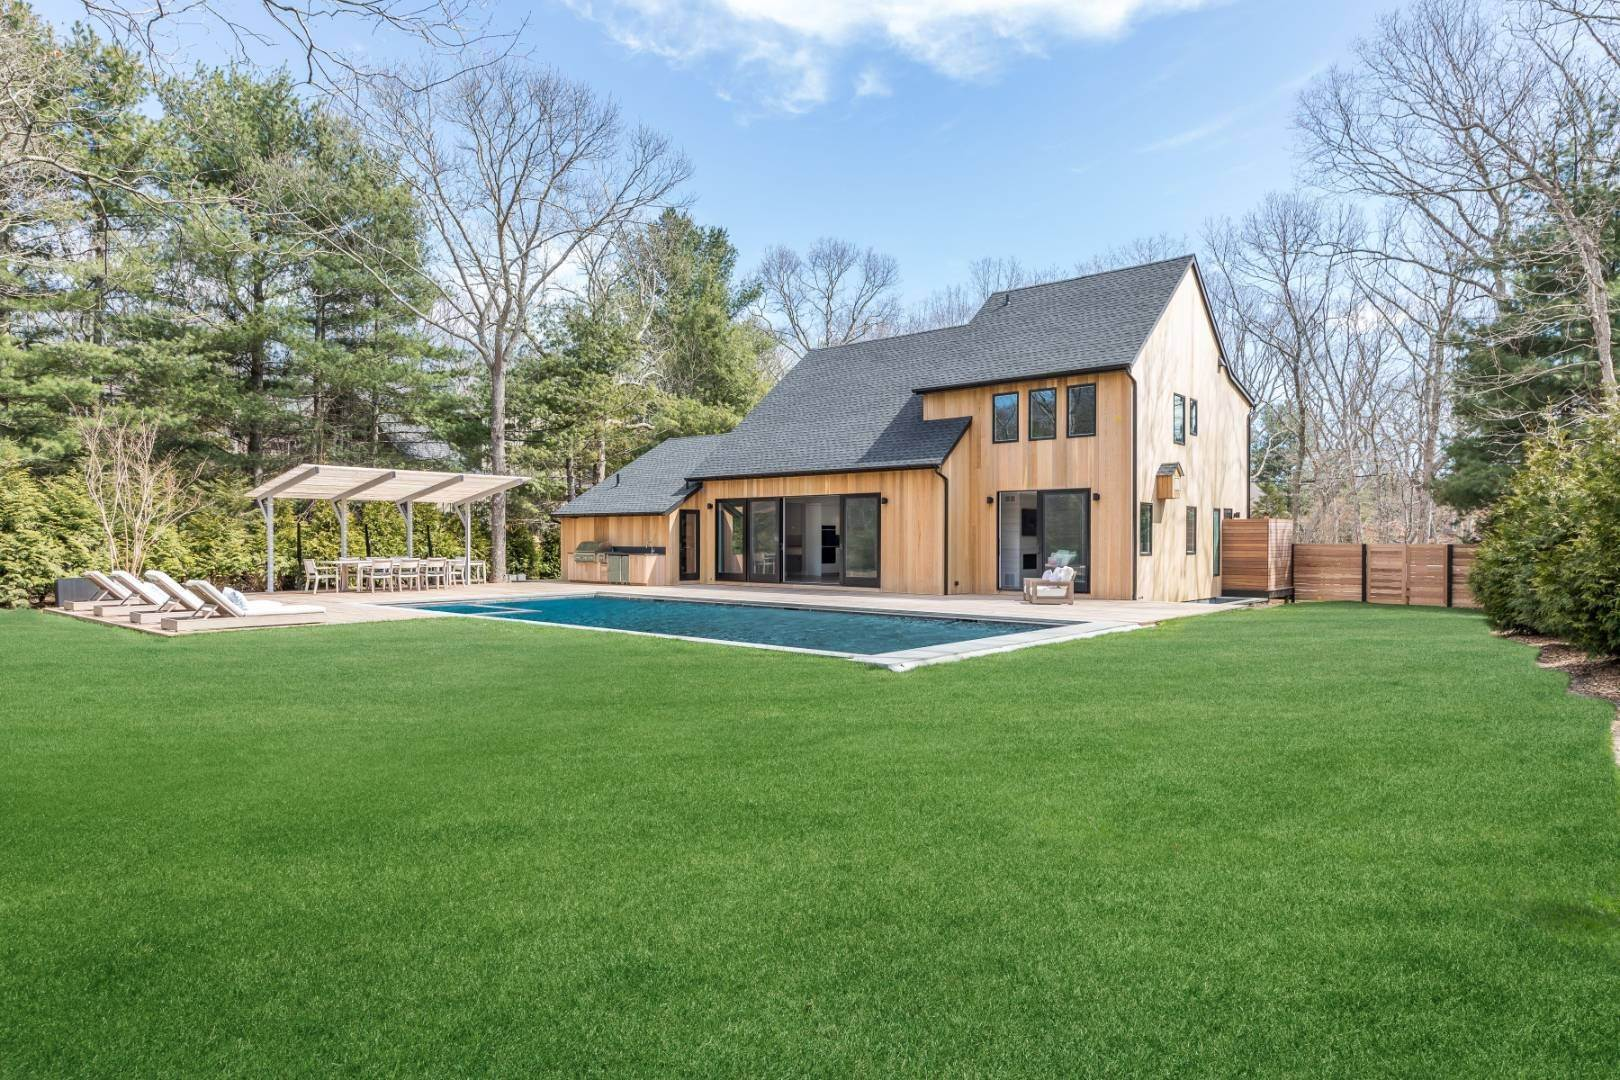 Single Family Home for Sale at Custom New Construction With Unparalleled Amenities 62 Settlers Landing Lane, East Hampton, NY 11937